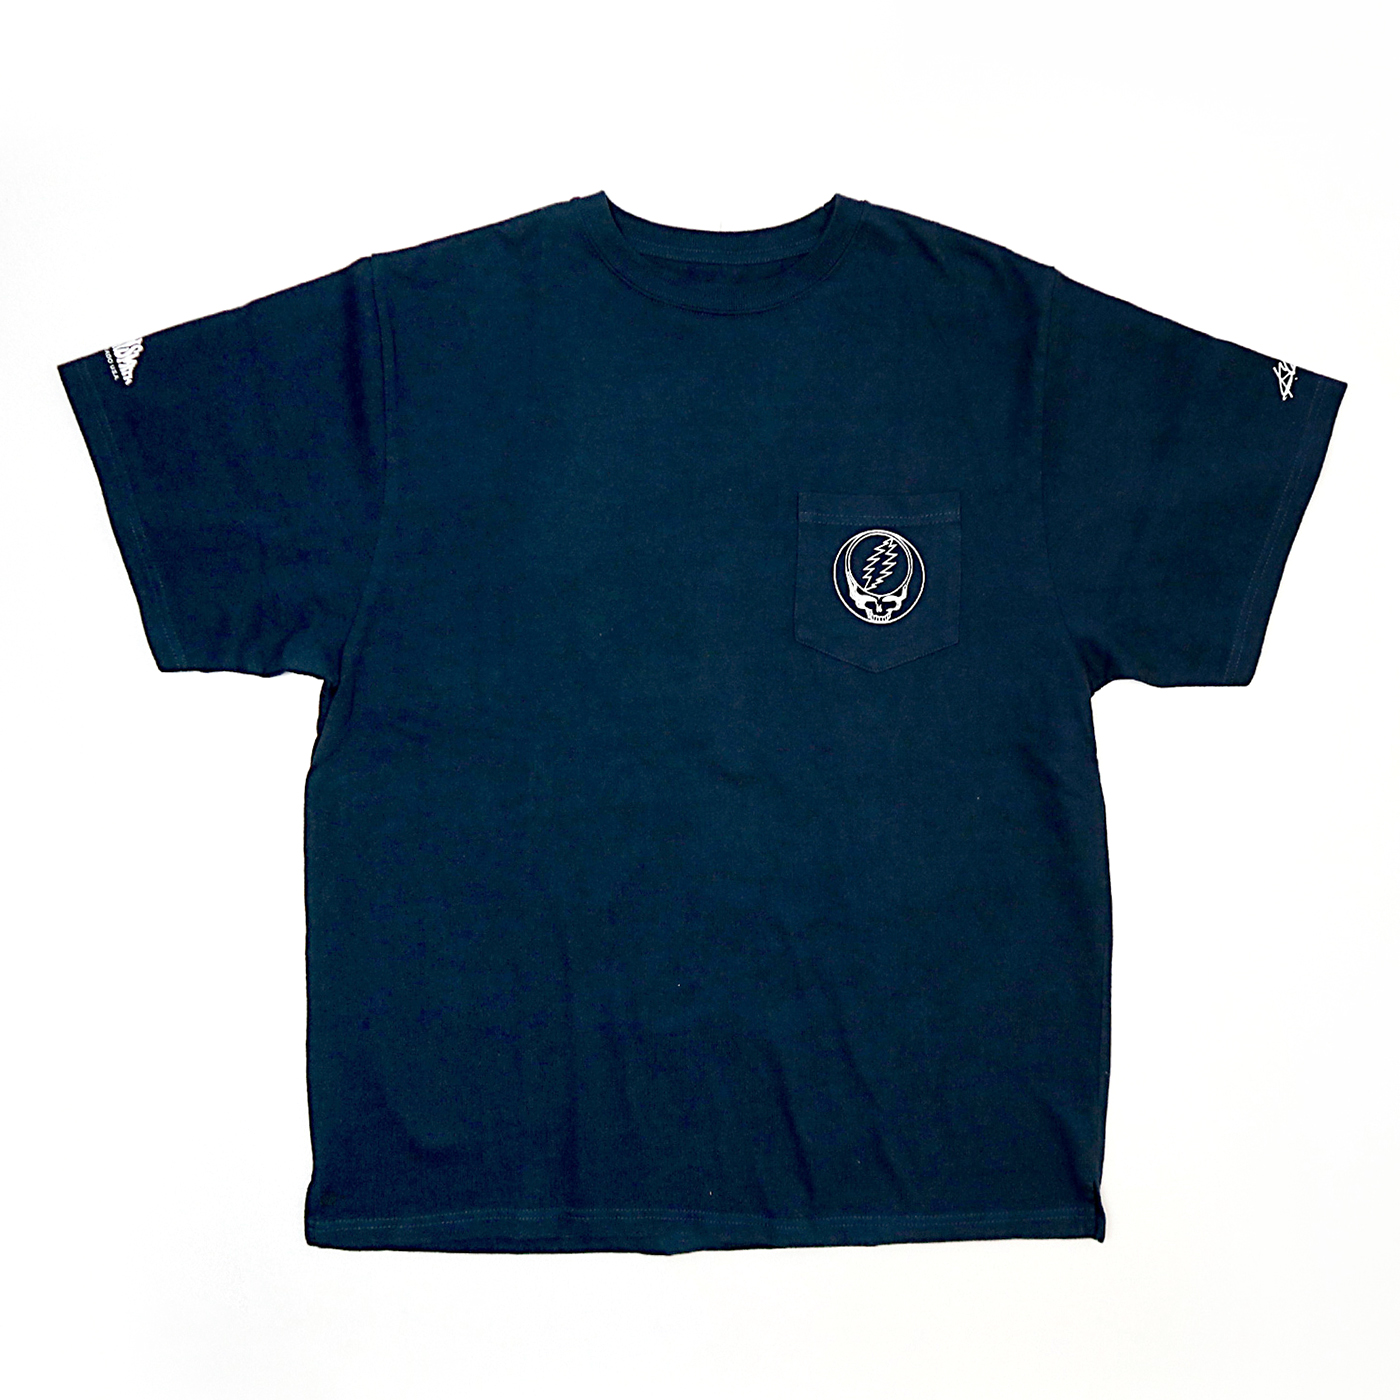 product: MS×DEAD LIGHTNING / color: NAVY 1